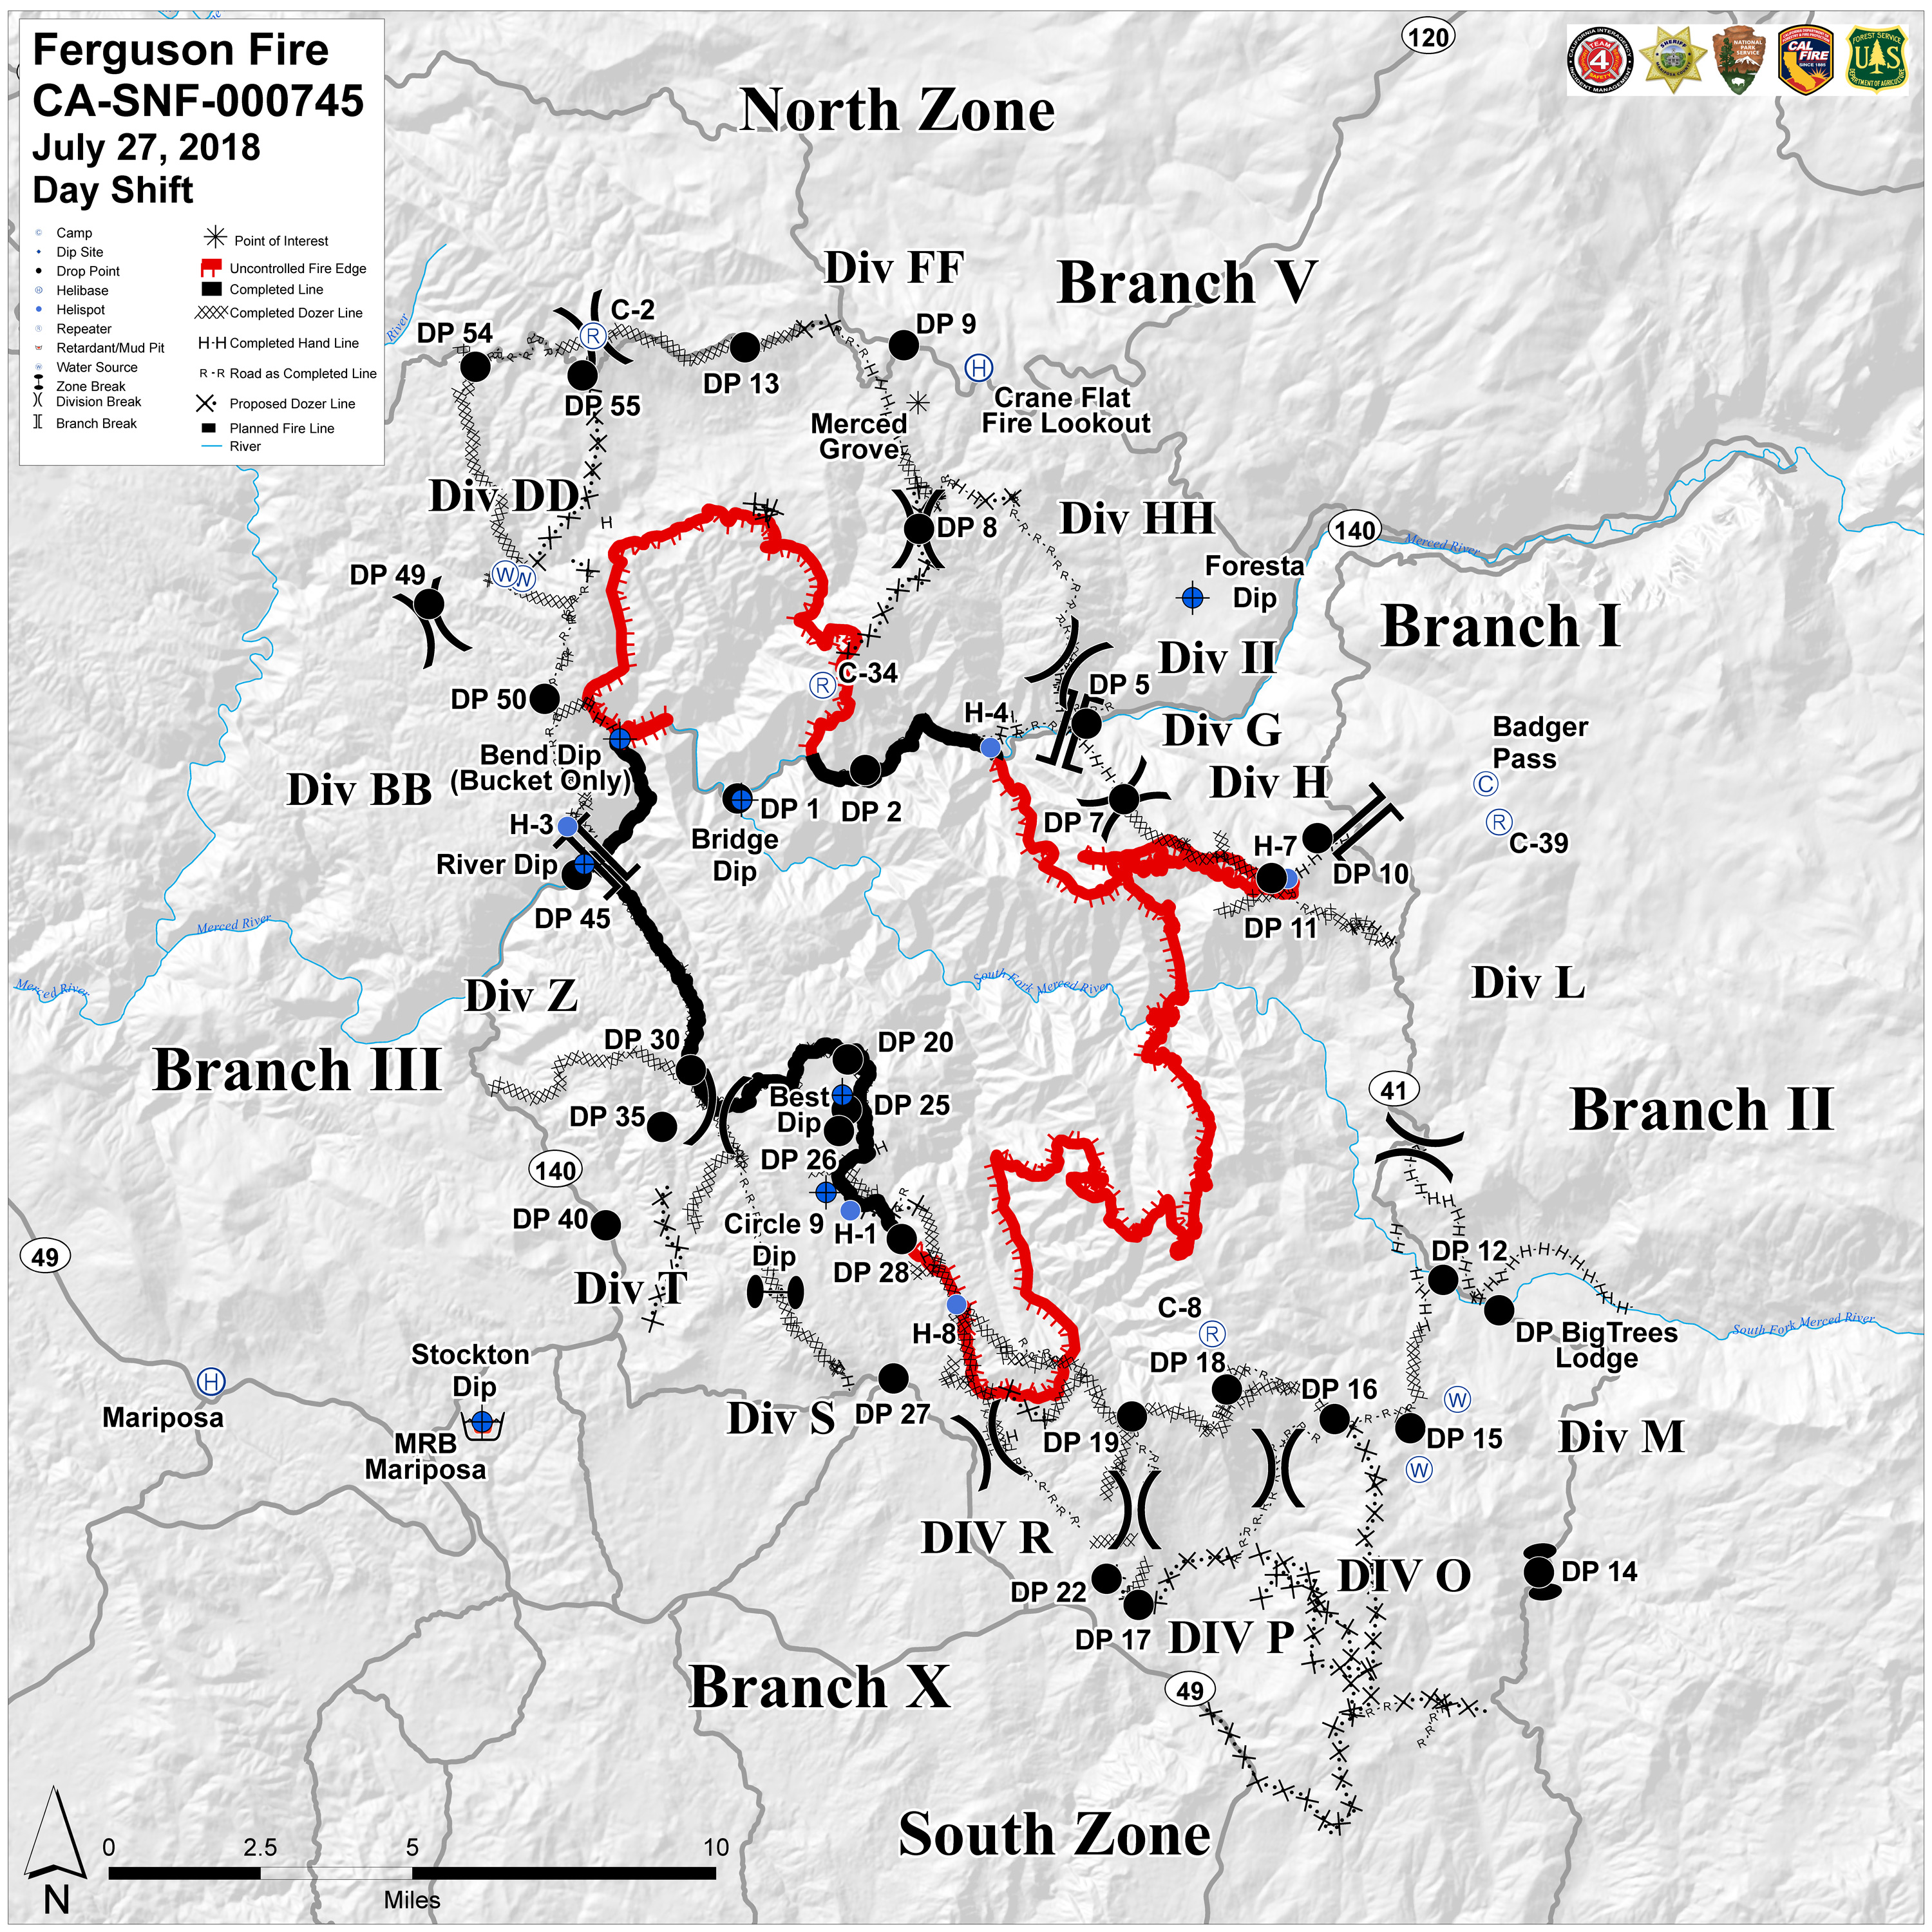 County Line 2 Fire Map.Ferguson Fire Near Yosemite National Park In Mariposa County Friday